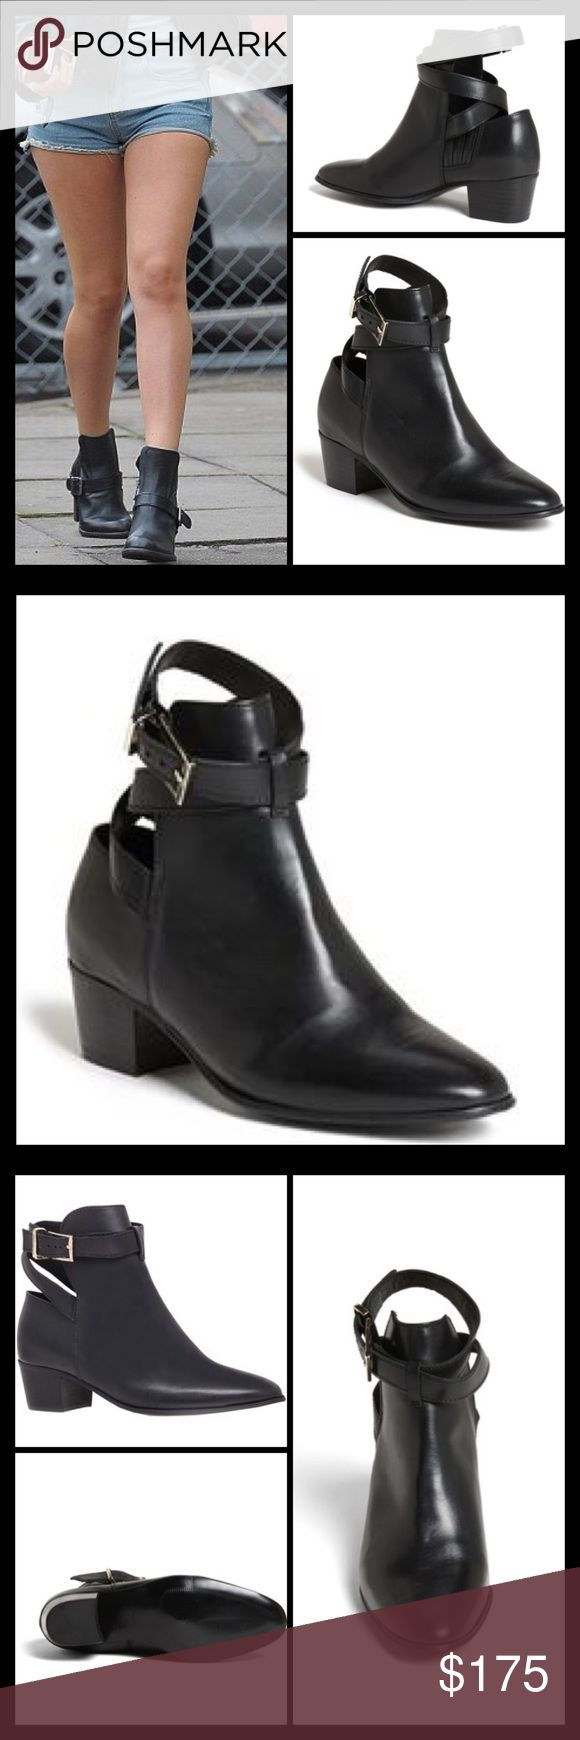 💠JUST IN💠CROSSING ANKLE STRAP BOOT [KURT GEIGER] 🛍 2+ BUNDLE=SAVE  ‼️NO TRADES--NO HOLDS--NO MODELING  💯 Brand Authentic   ✈️ Ship Same Day--Purchase By 2PM PST  🖲 USE BLUE OFFER BUTTON TO NEGOTIATE   ✔️ Ask Questions Not Answered In Discription-Want You To Be Happy! Kurt Geiger Shoes Ankle Boots & Booties